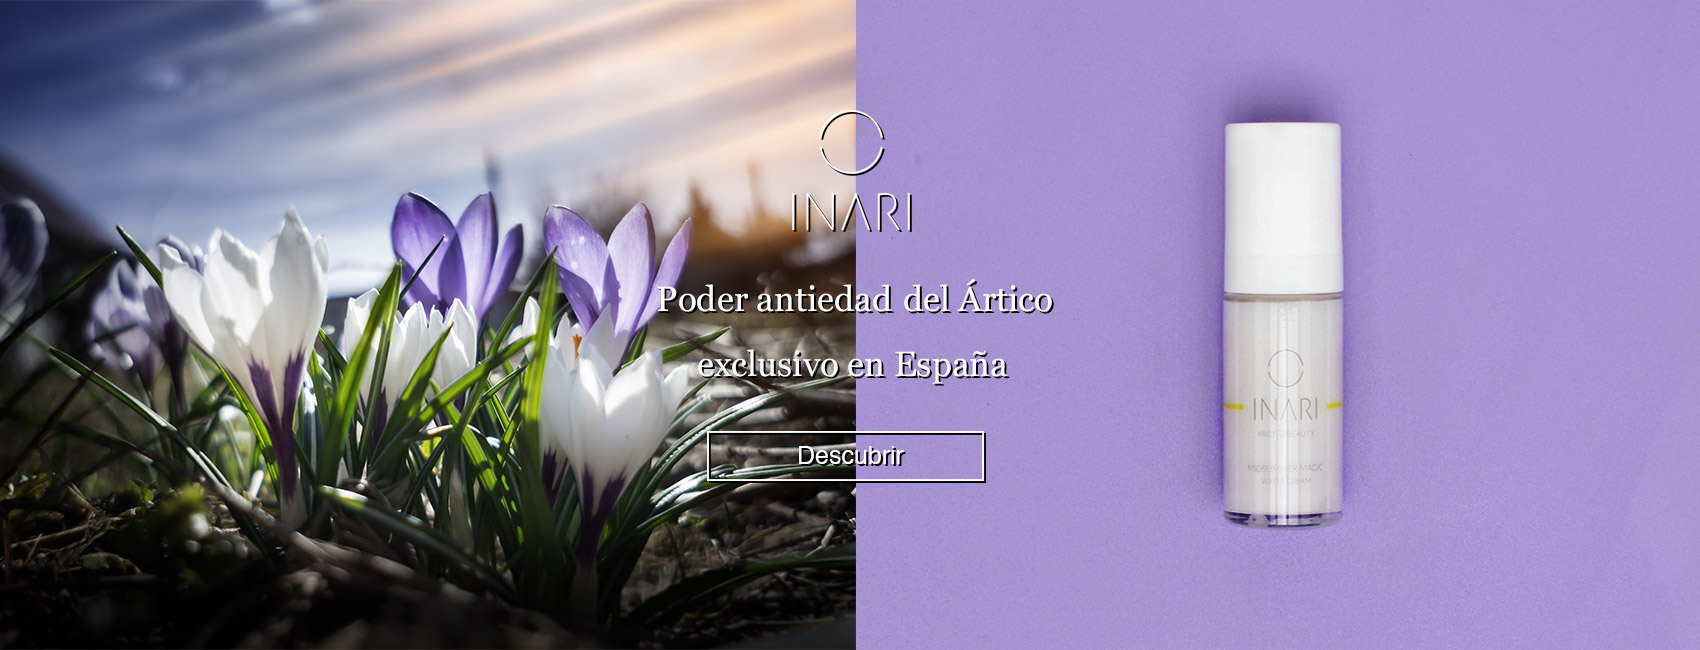 Cosmetica-natural-online